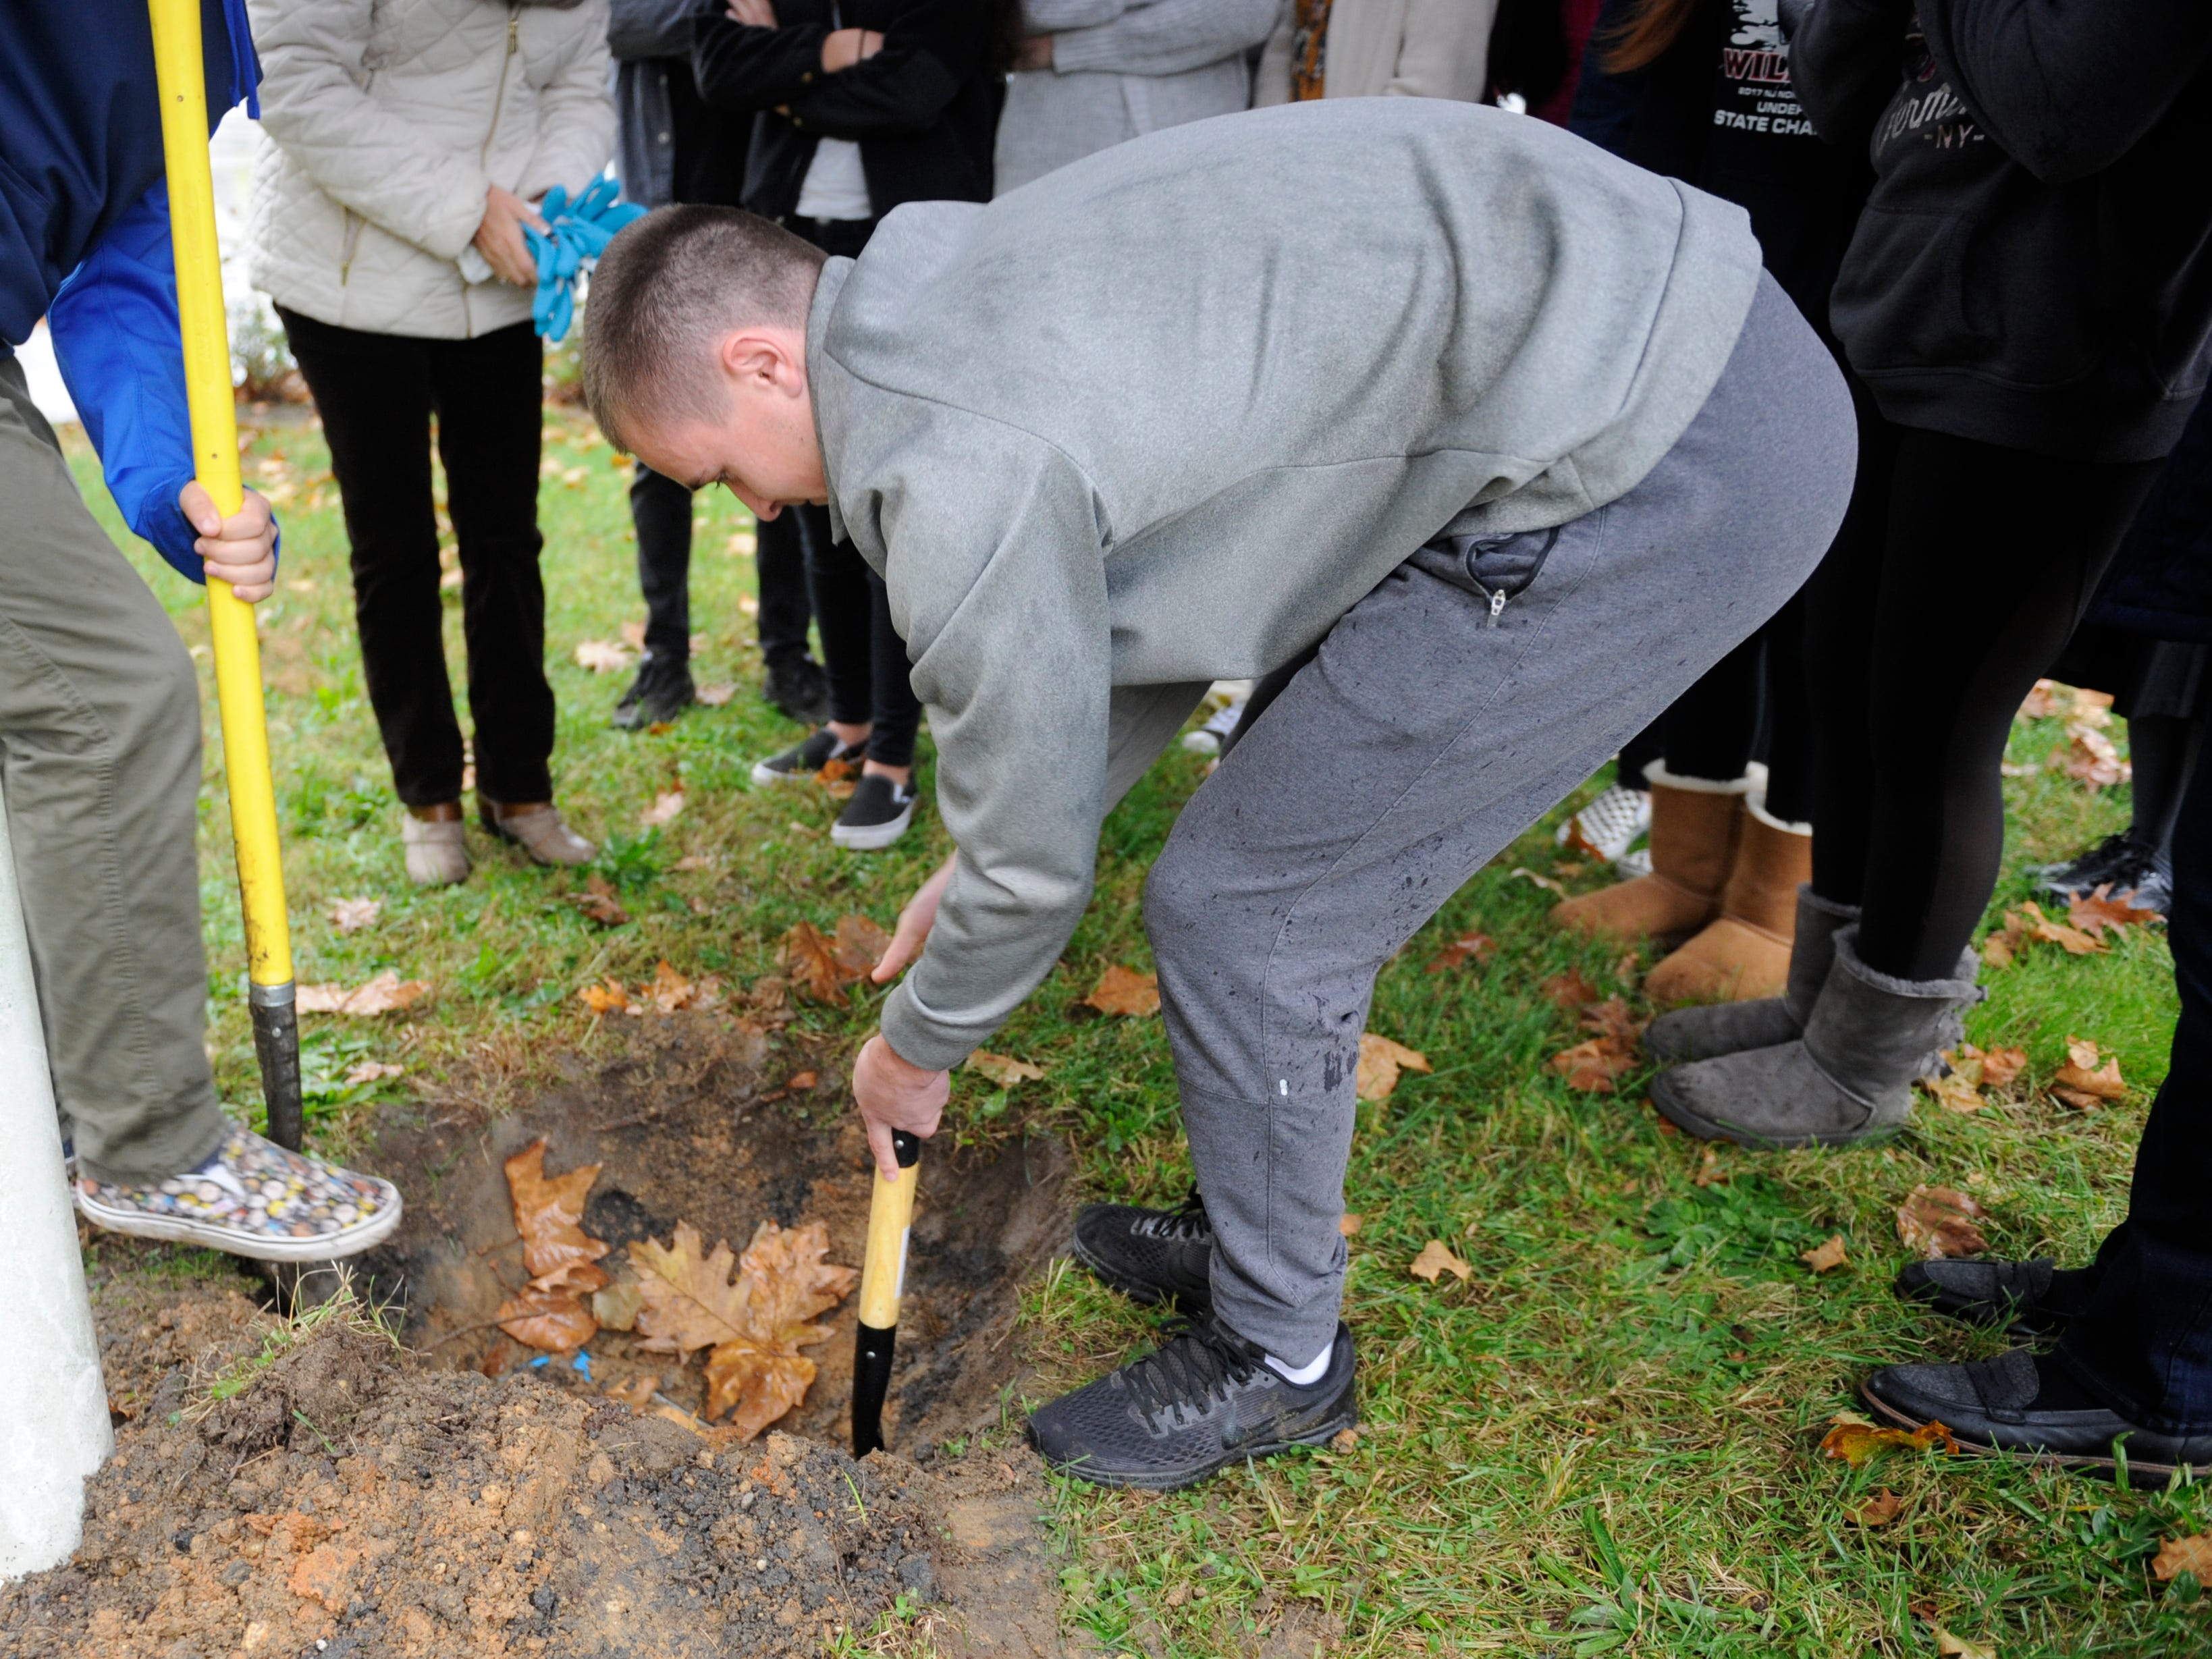 Nick Vicente, a St. Augustine senior, helps dig up a time capsule that his second grade Bishop Schad class buried a decade ago.